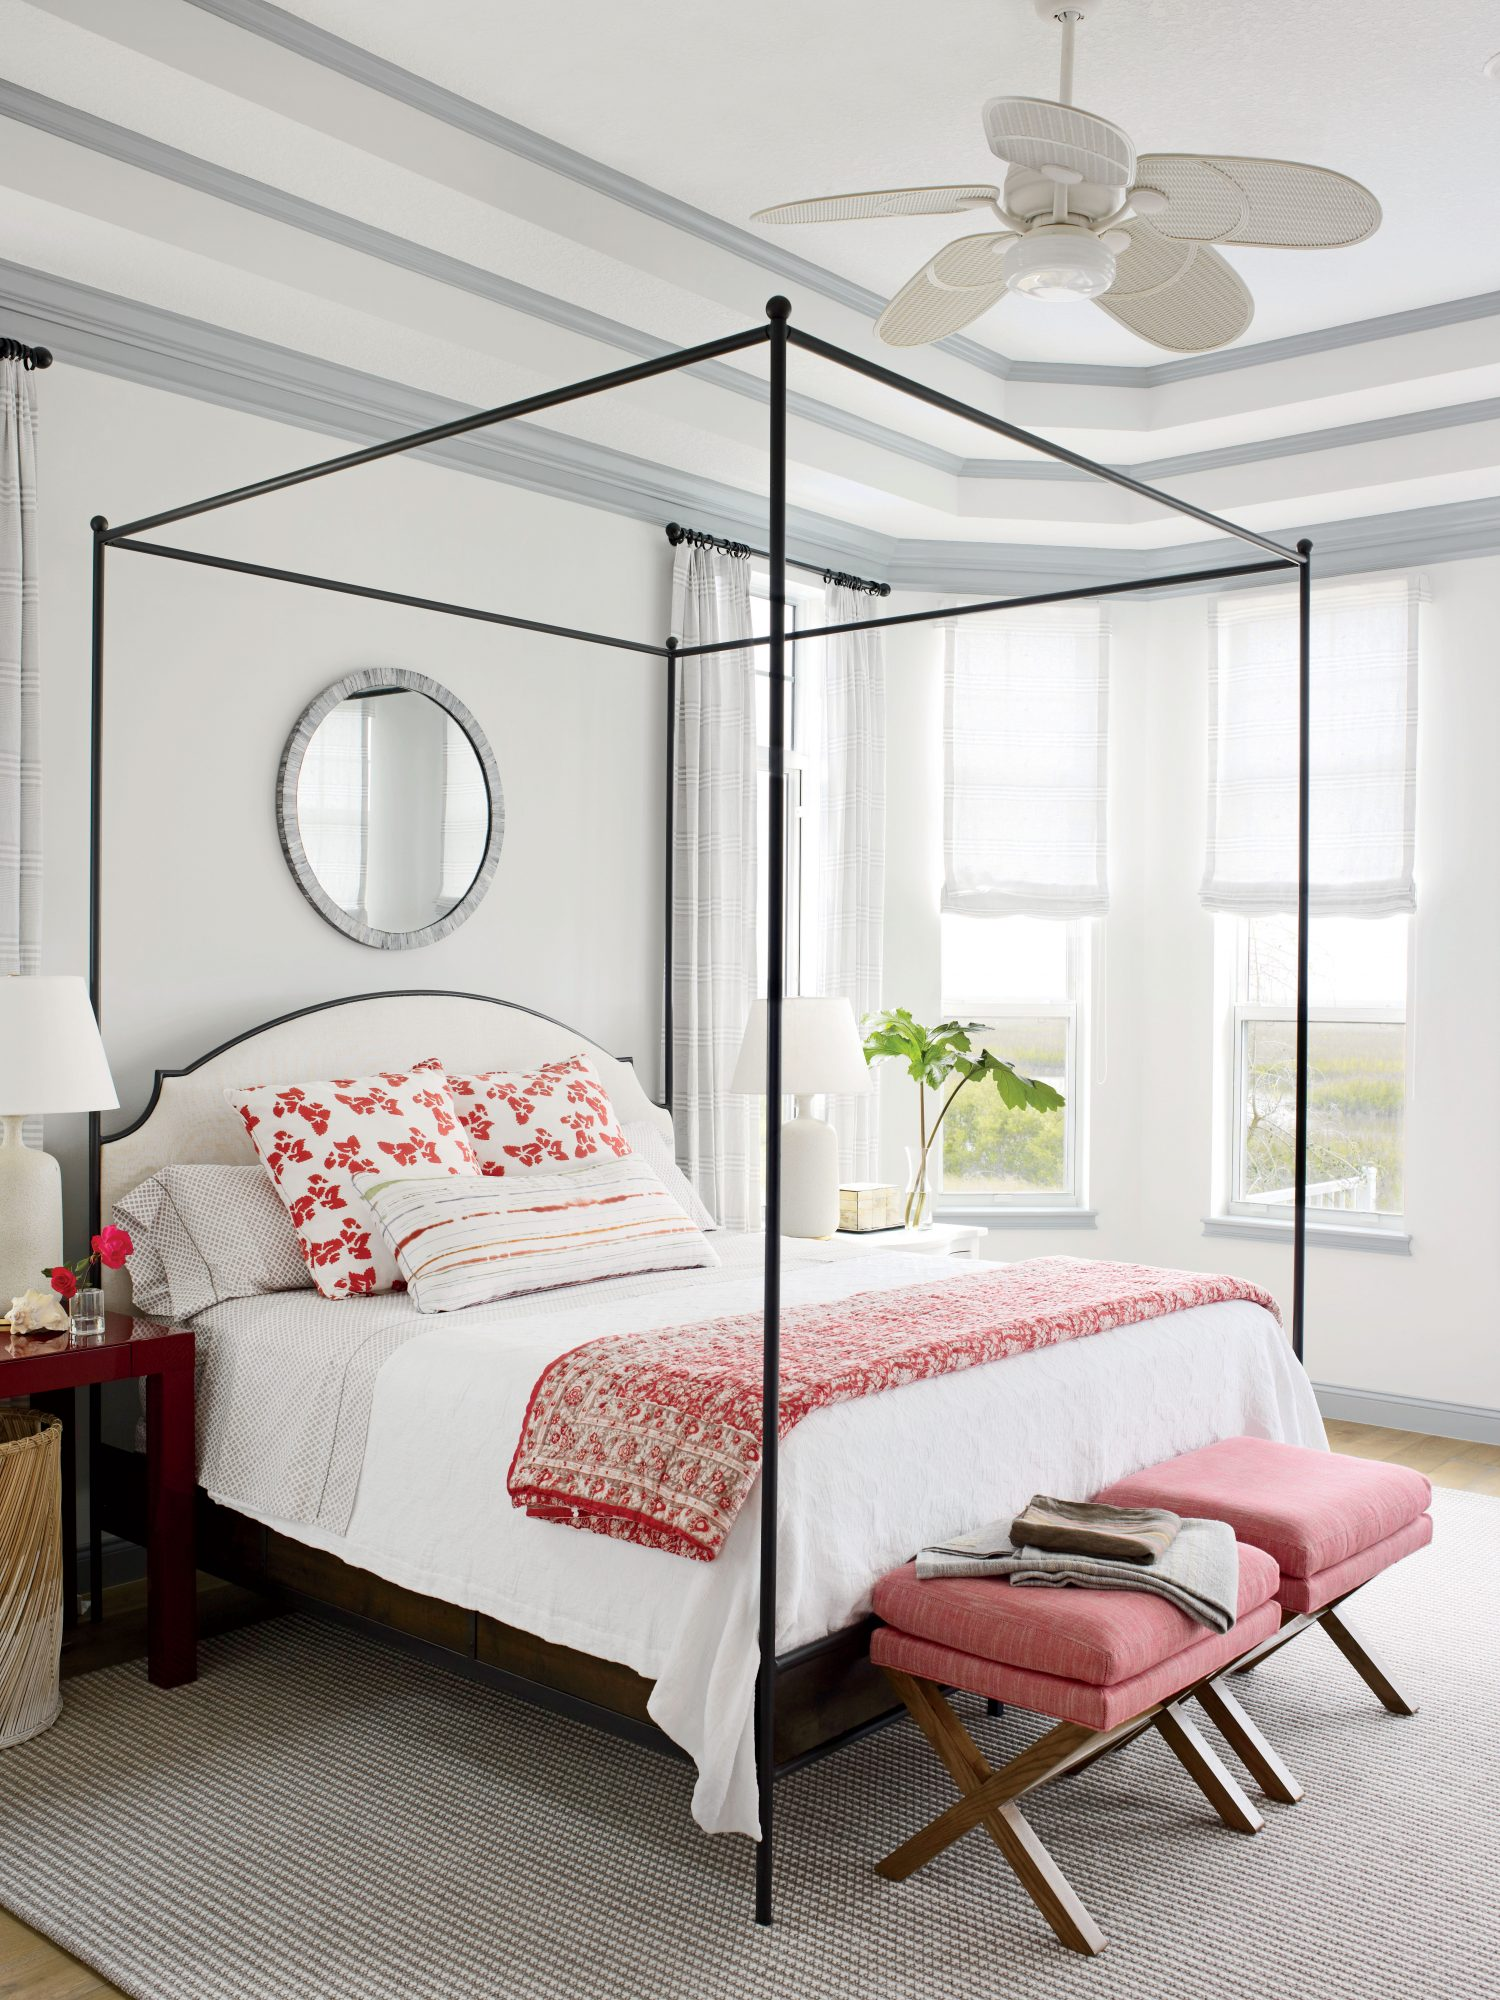 This St. Augustine, Florida, master bedroom is the picture of romance with its wrought iron canopy bed and pomegranate accents.